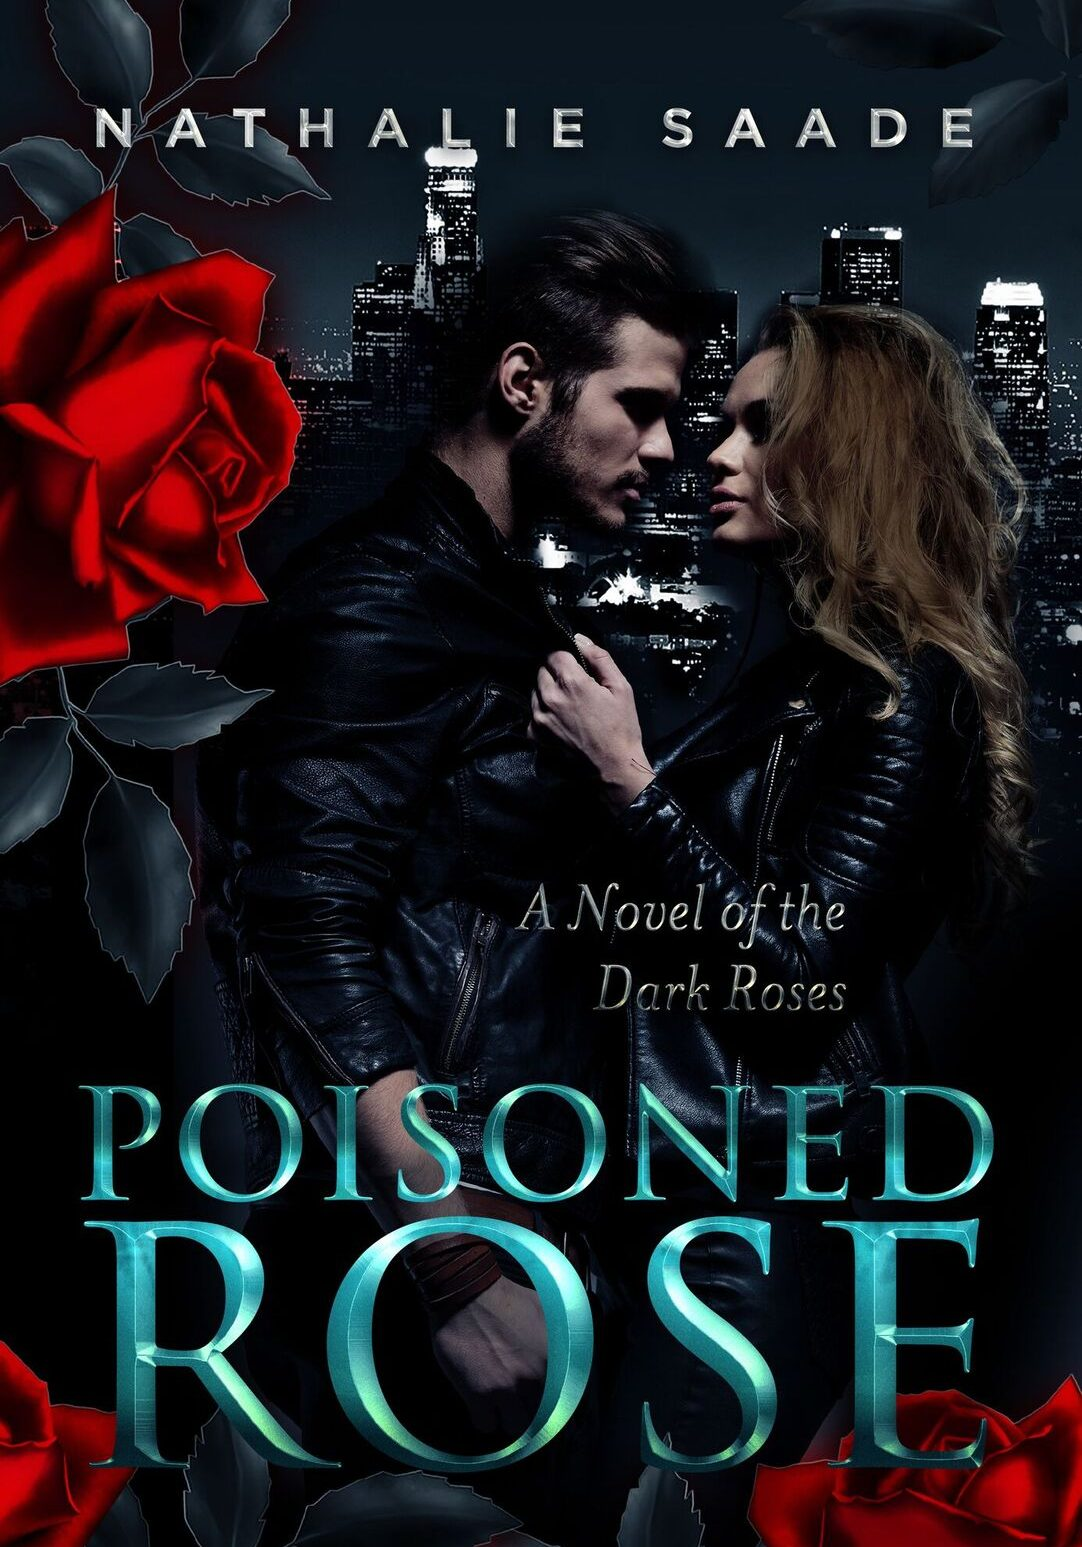 poisoned rose book trailer loewenherz creative